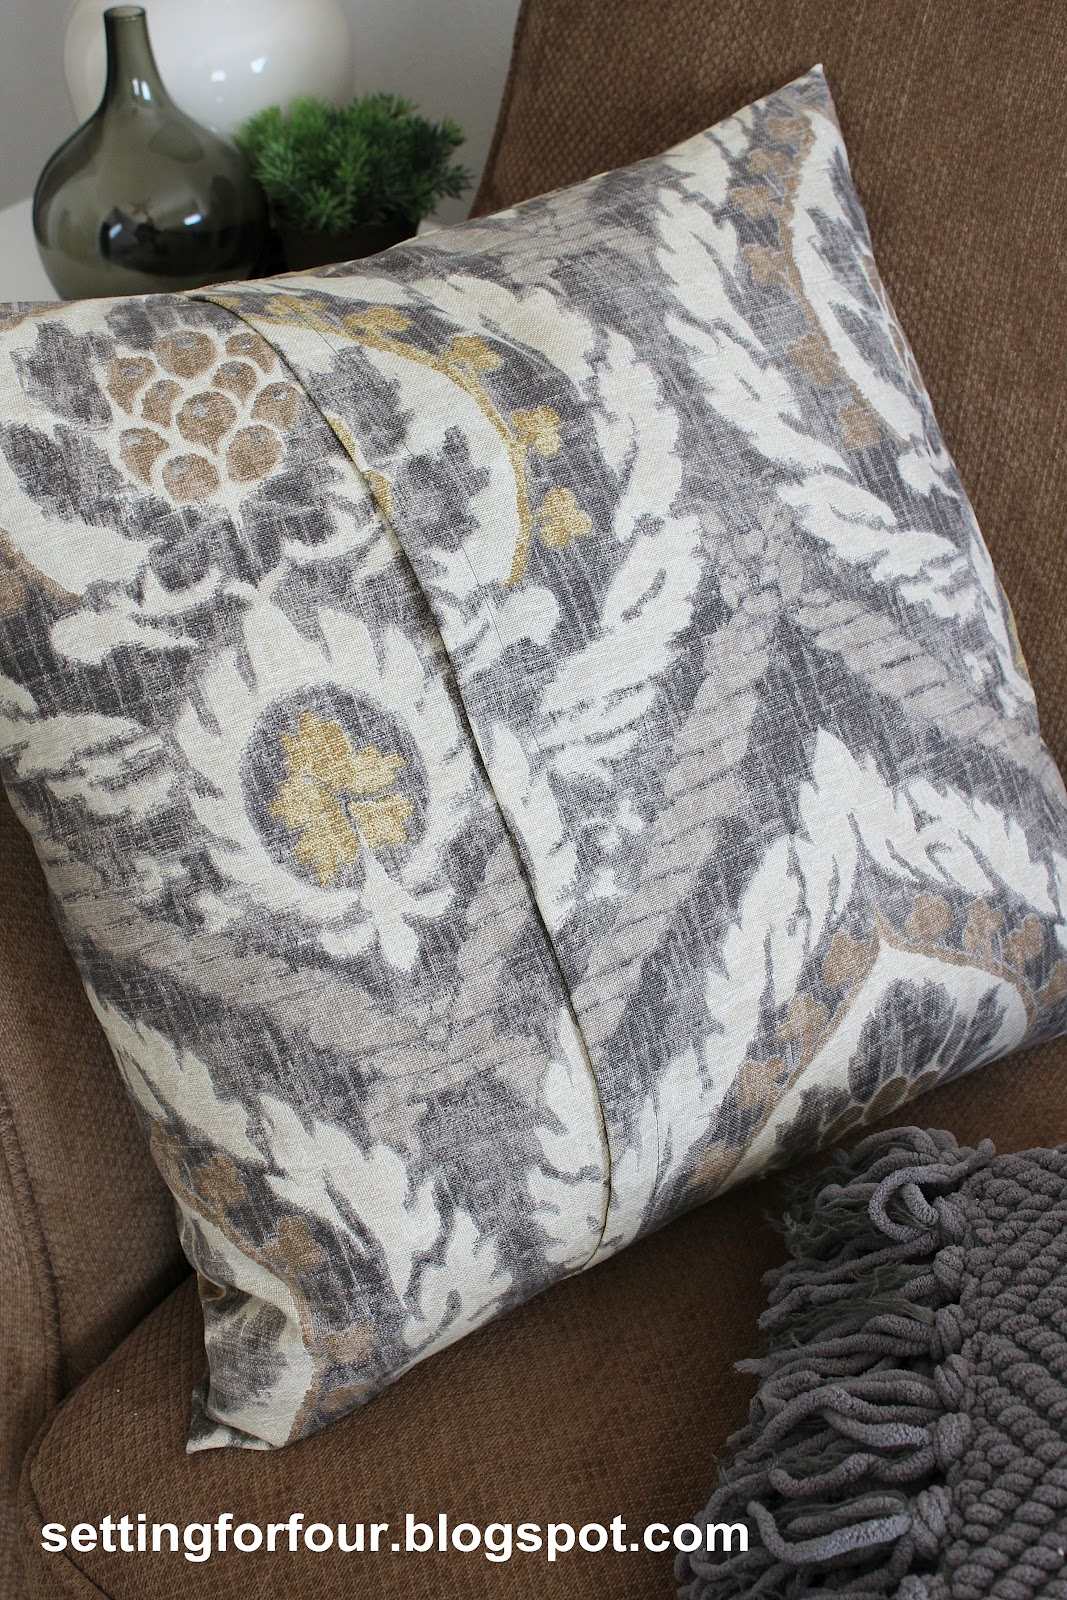 diy pillow cover 5 minutes to make setting for four make your own quick and easy pillow covers for your bedroom living room family